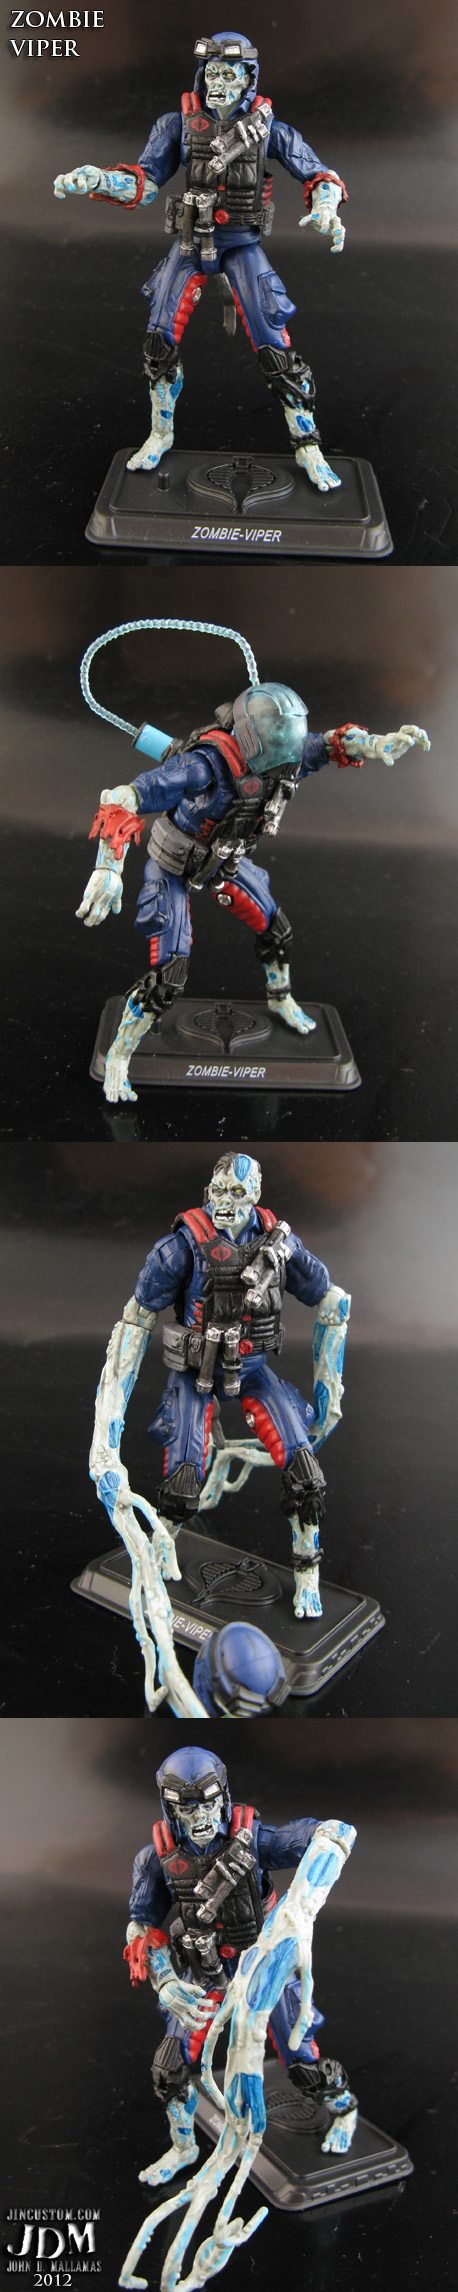 Custom Zombie Viper GI Joe